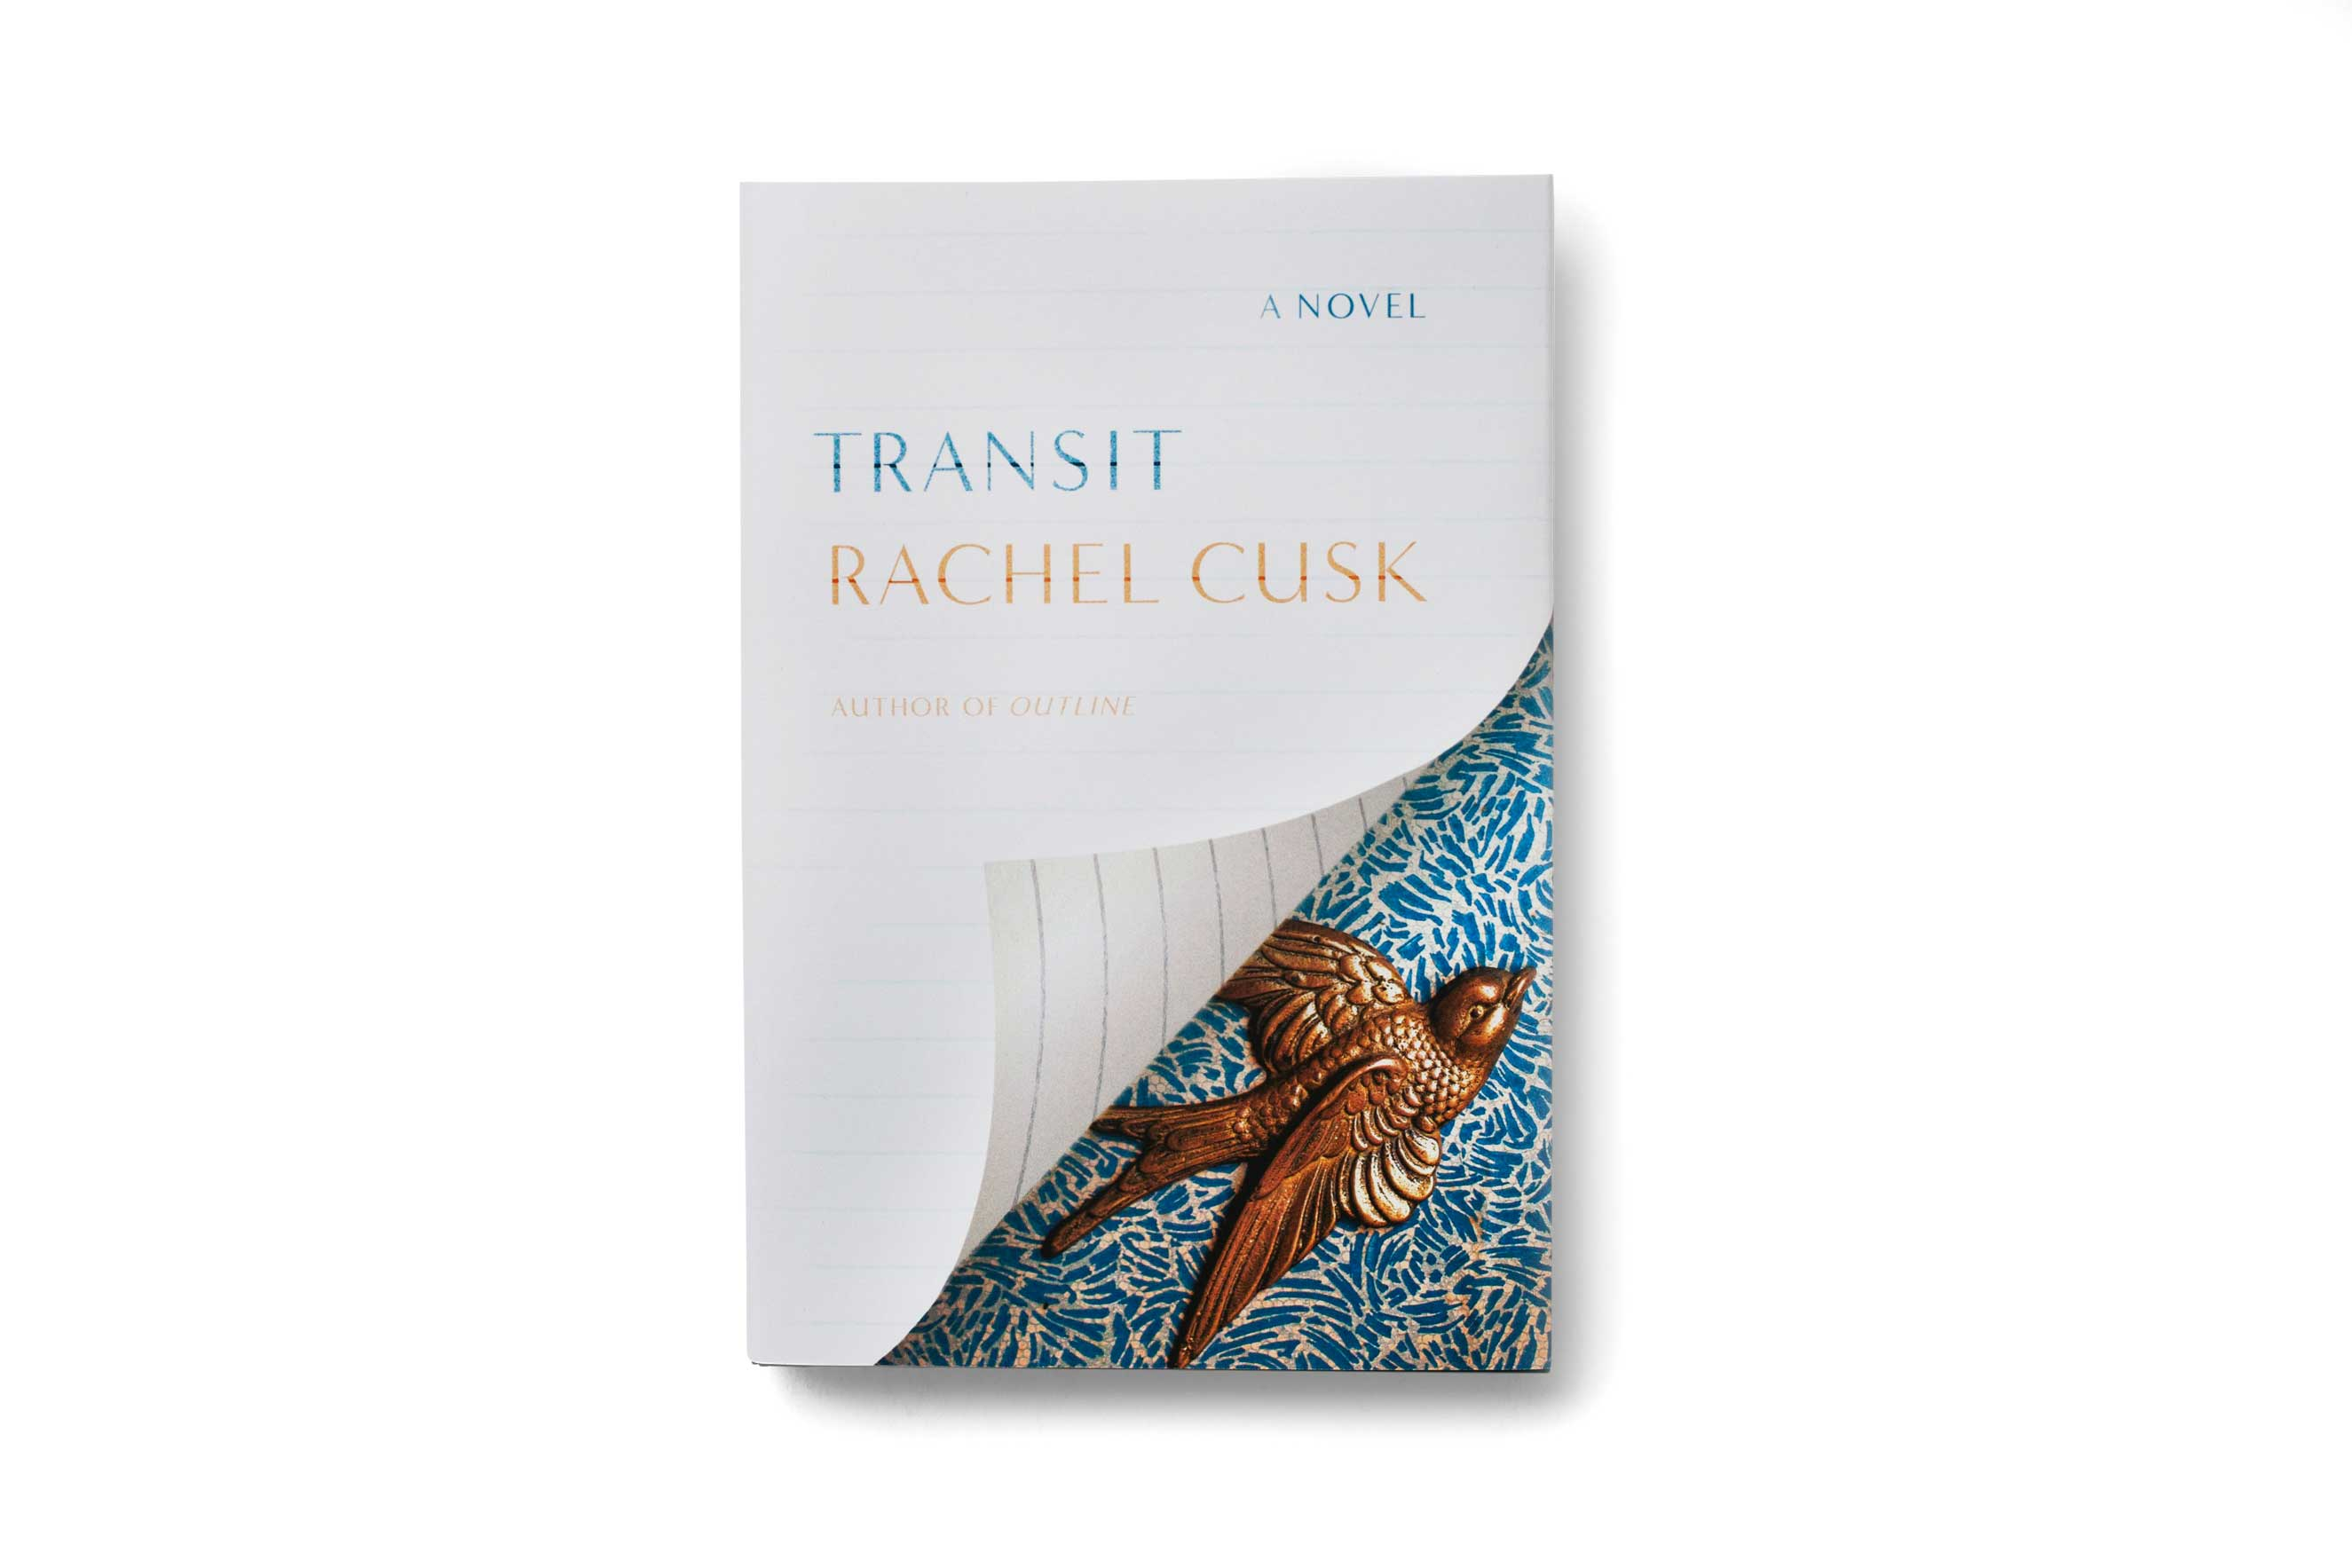 Book cover of 'Transit' by Rachel Cusk